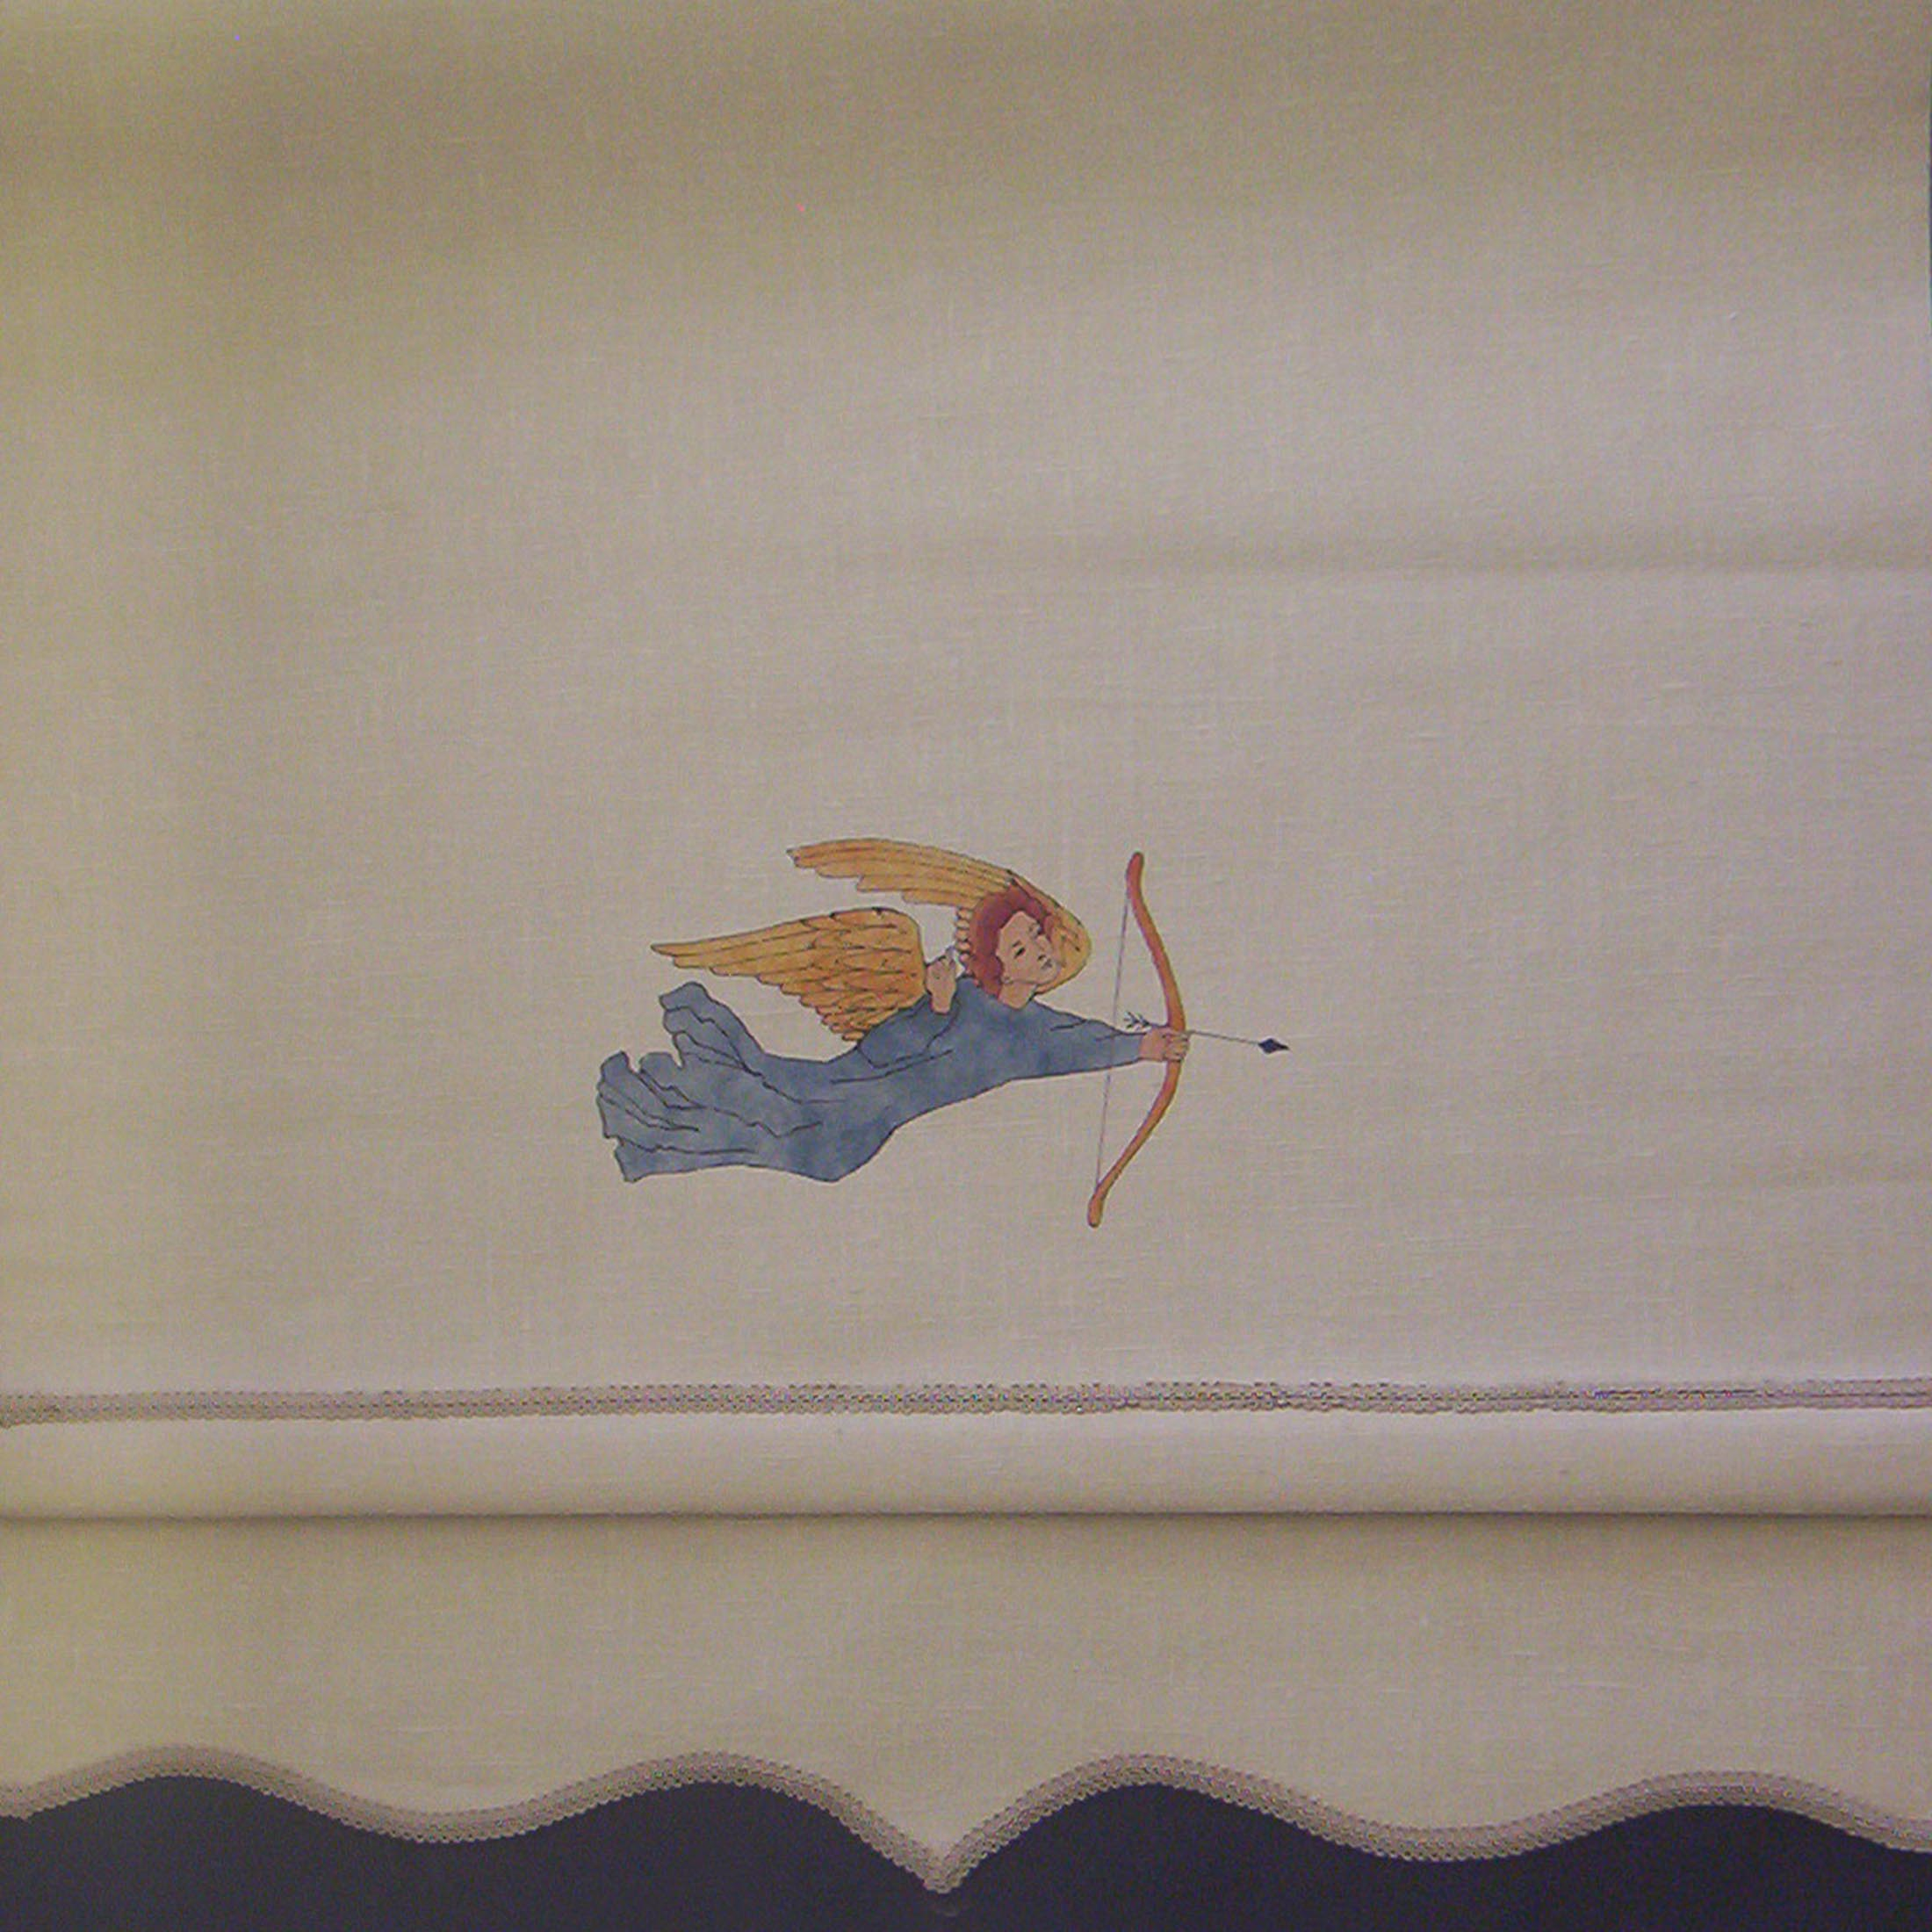 A hand painted angel from the Voysey Angel Forest pattern on a roller shade. We also adapted some of the wallpaper foliage as a stencil pattern for the over drapes.